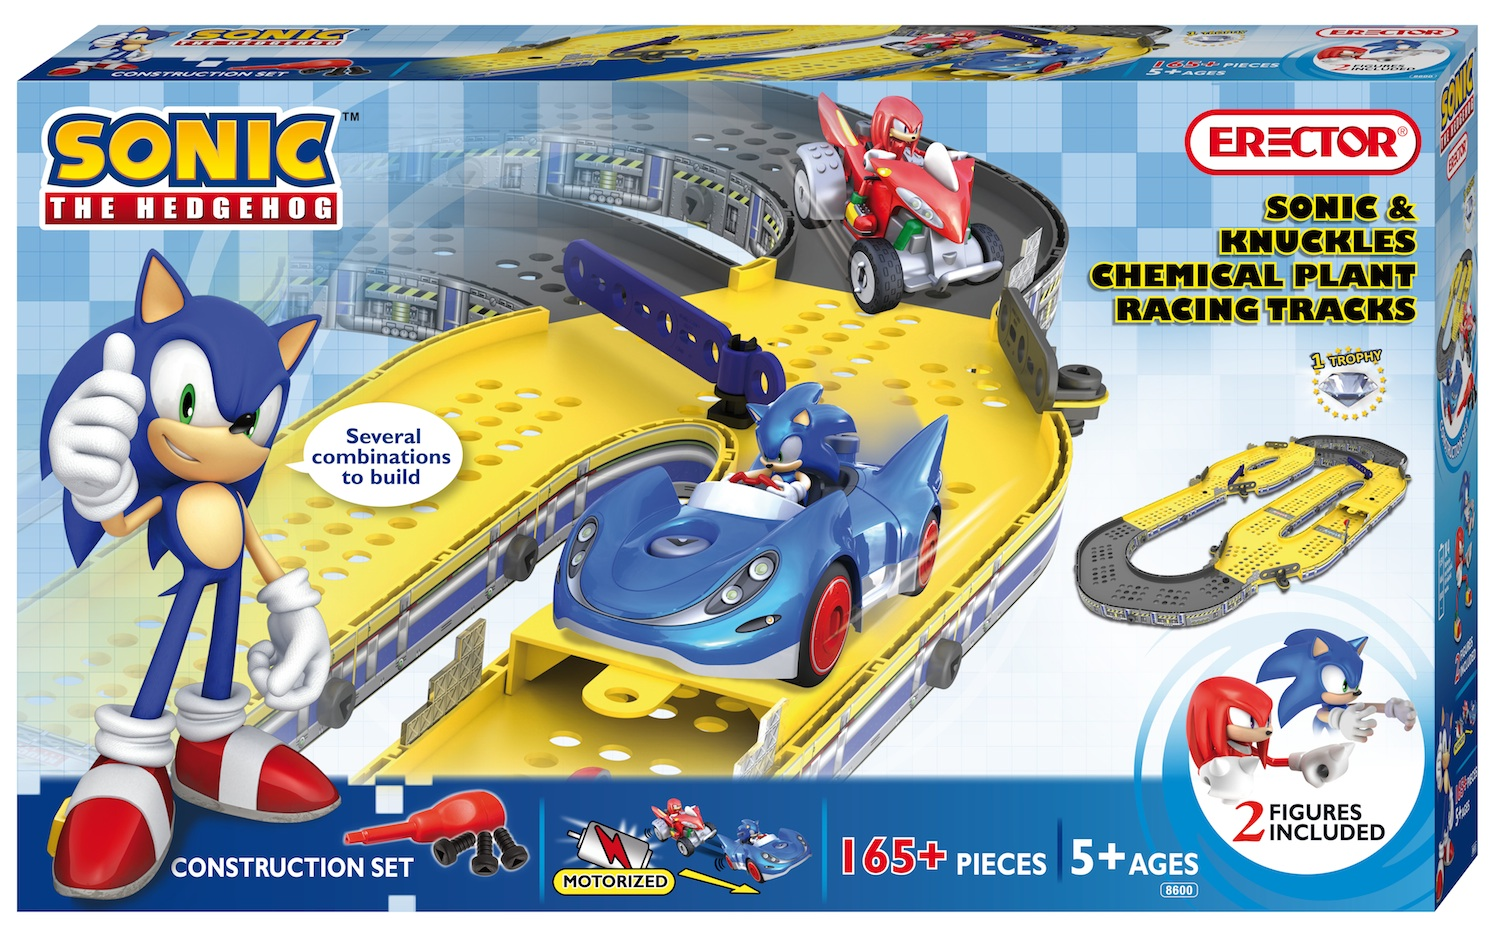 Target Sonic Toys : Sonic the hedgehog erector set giveaway holiday